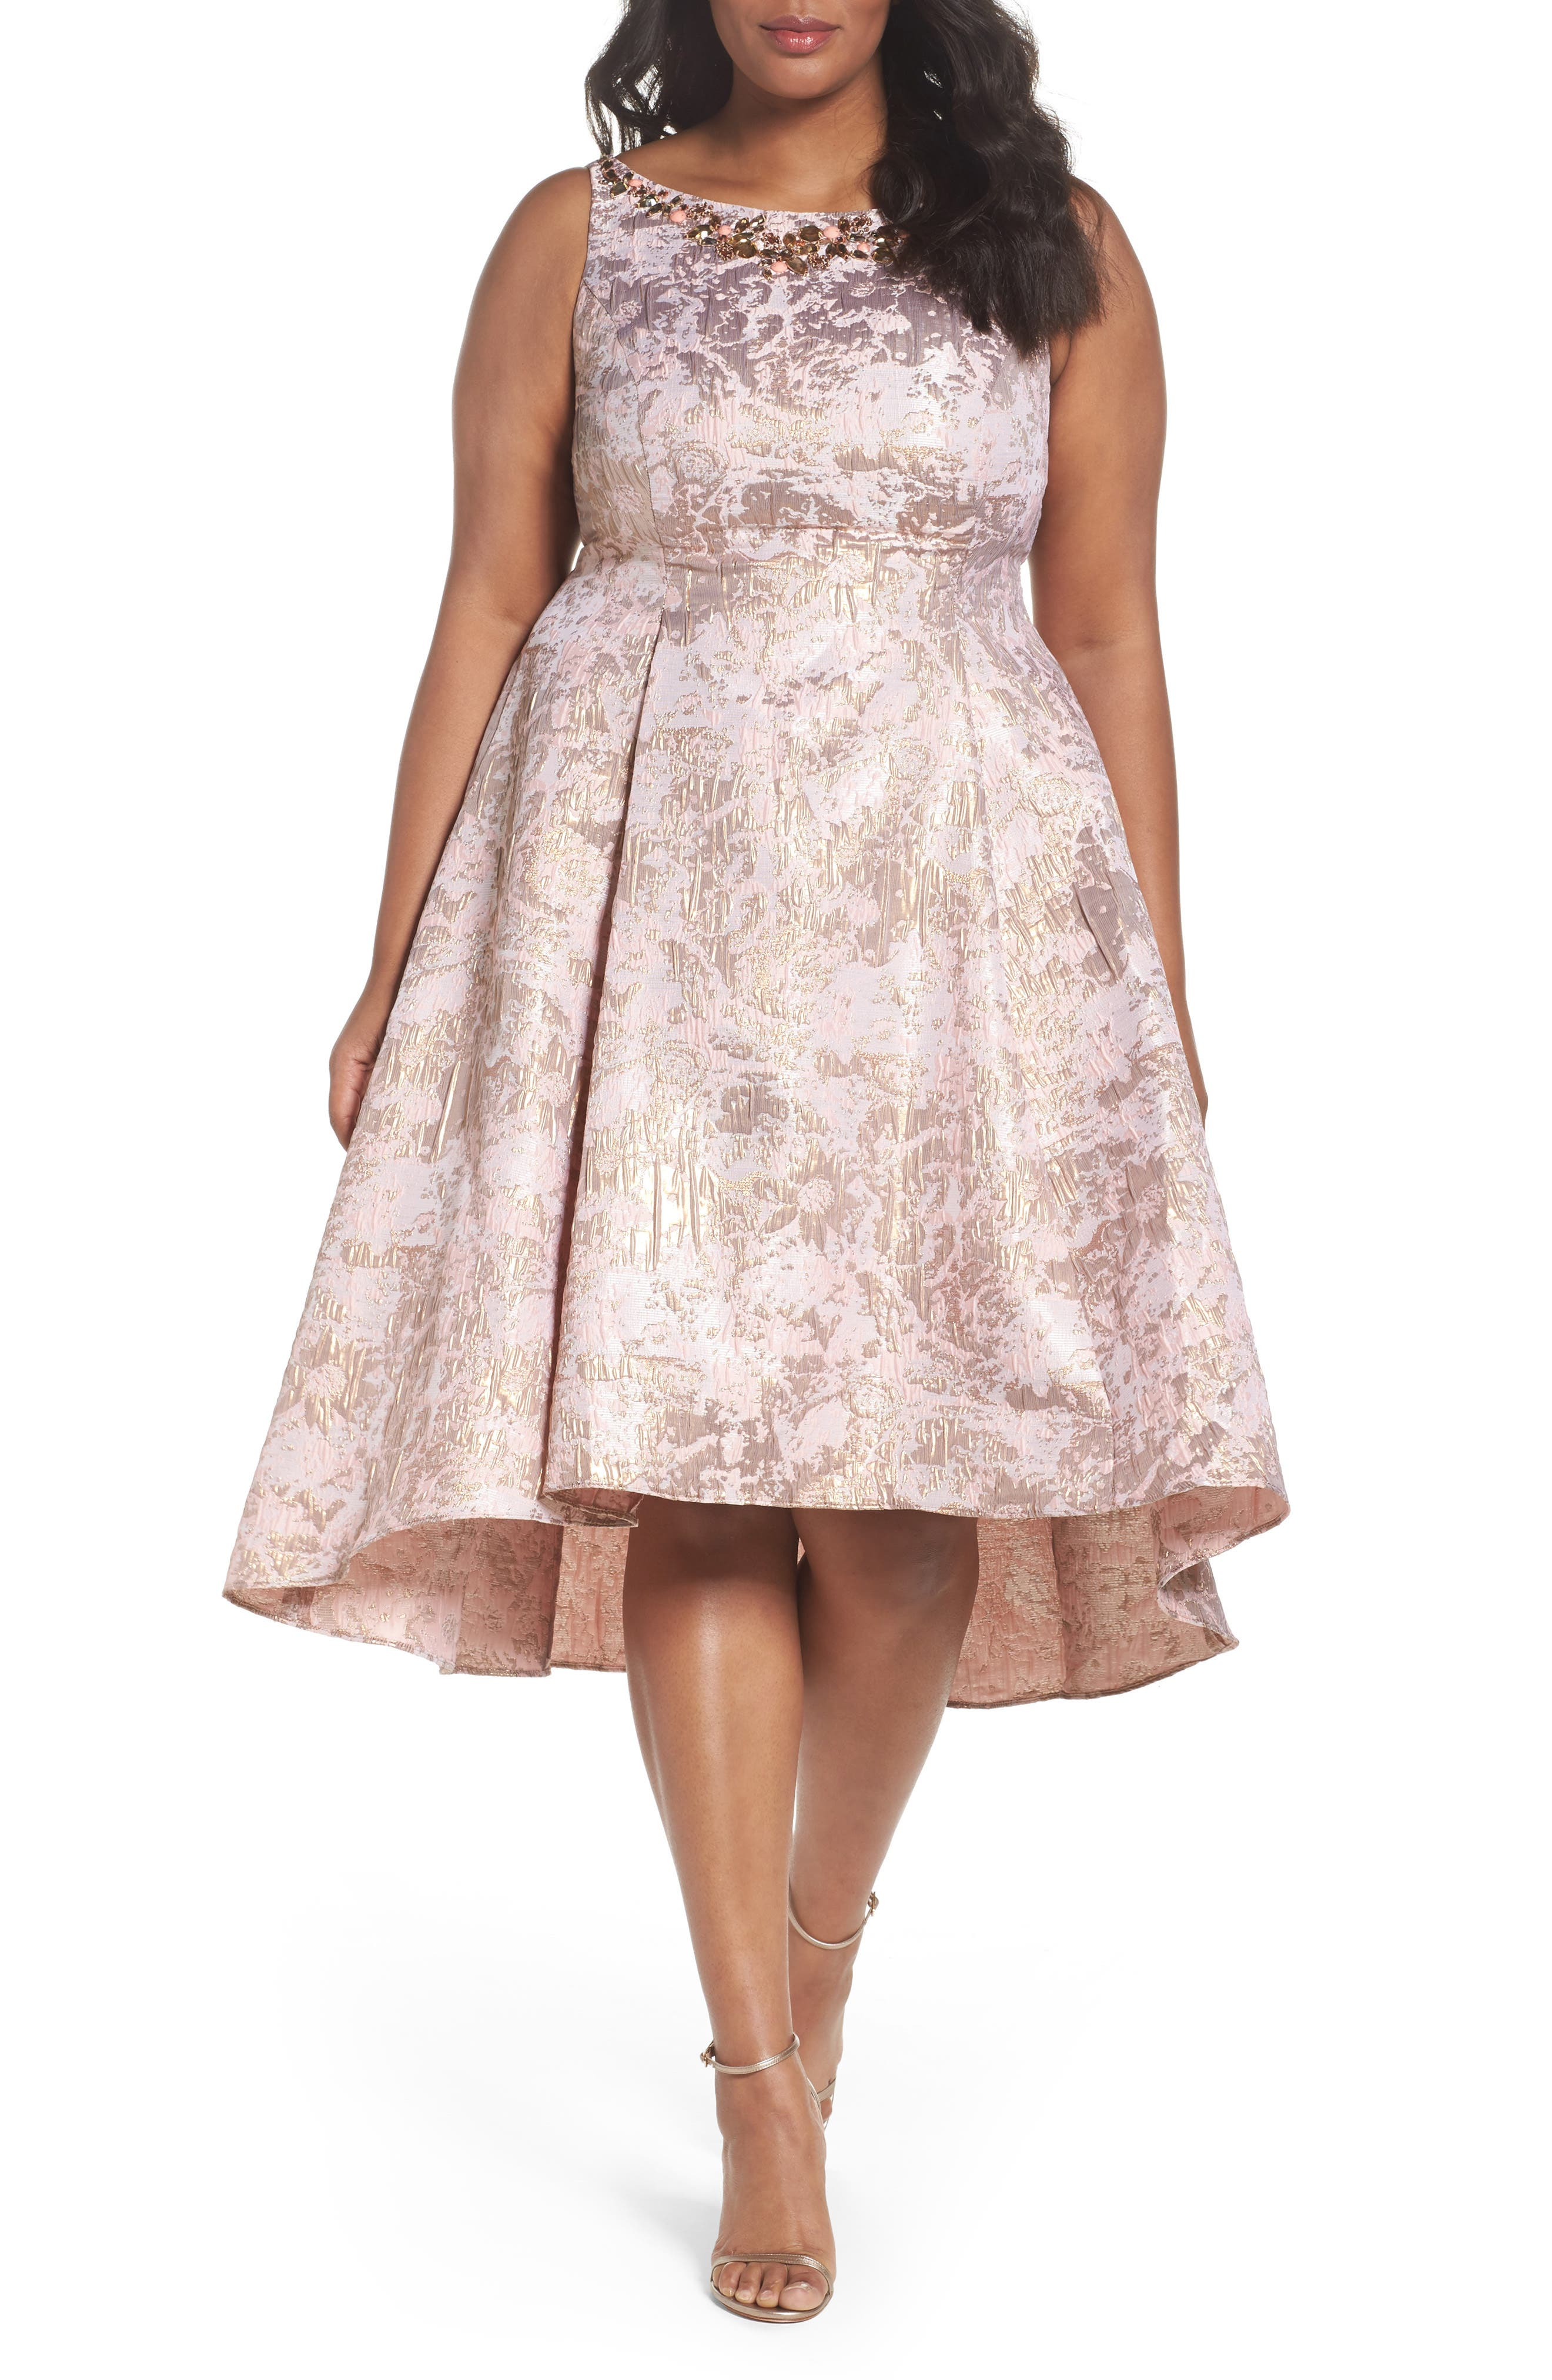 Adrianna Papell Embellished Metallic Jacquard Party Dress (Plus Size)